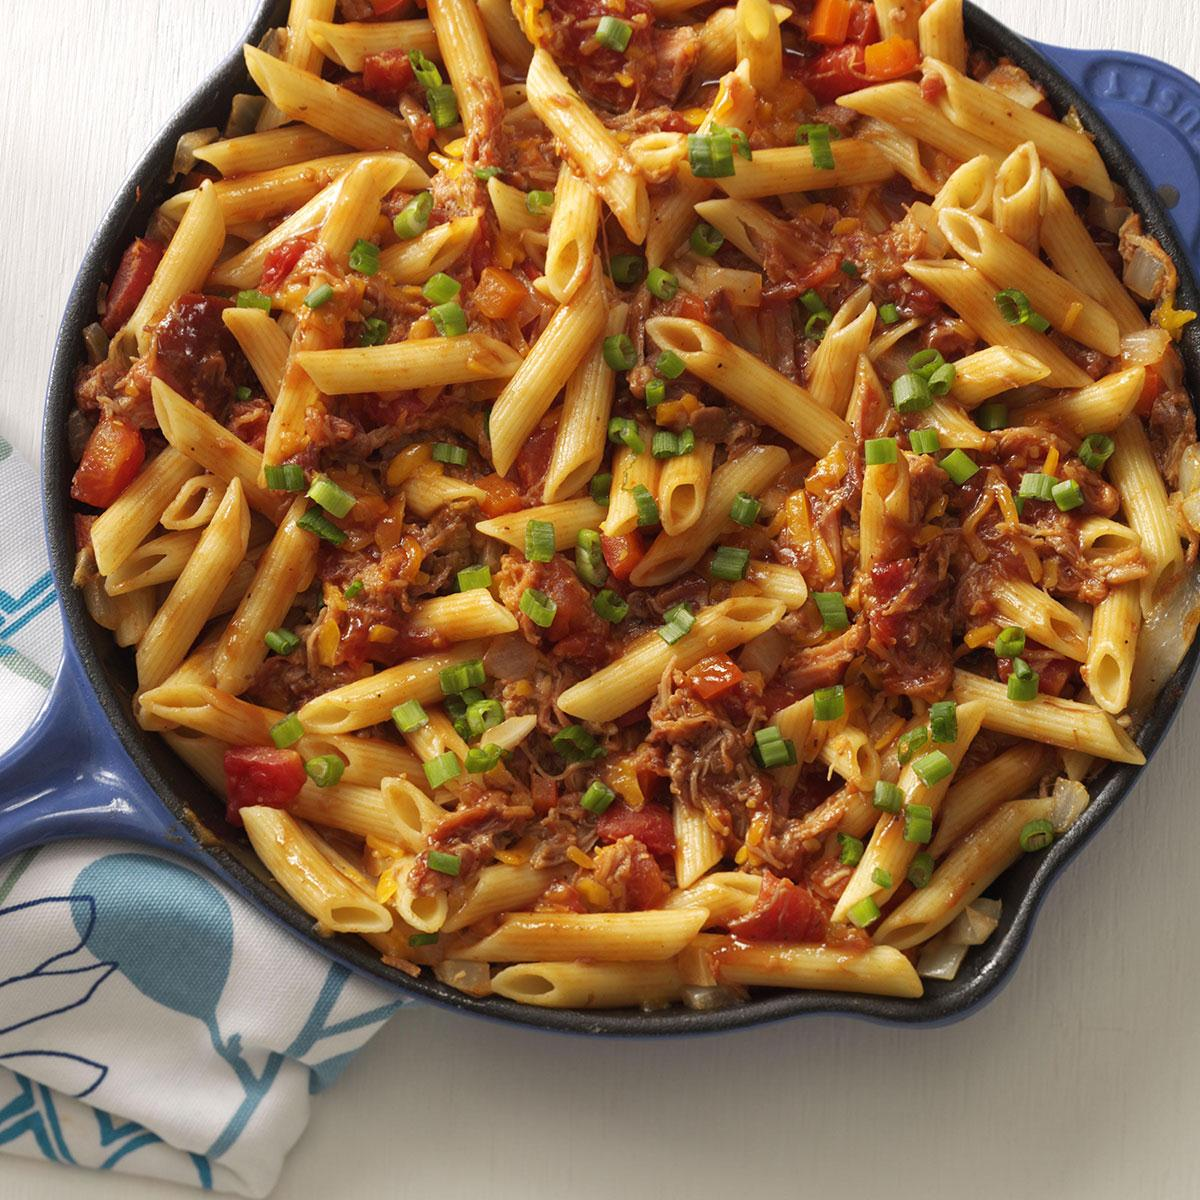 What Is Good To Cook For Dinner: Barbecue Pork And Penne Skillet Recipe